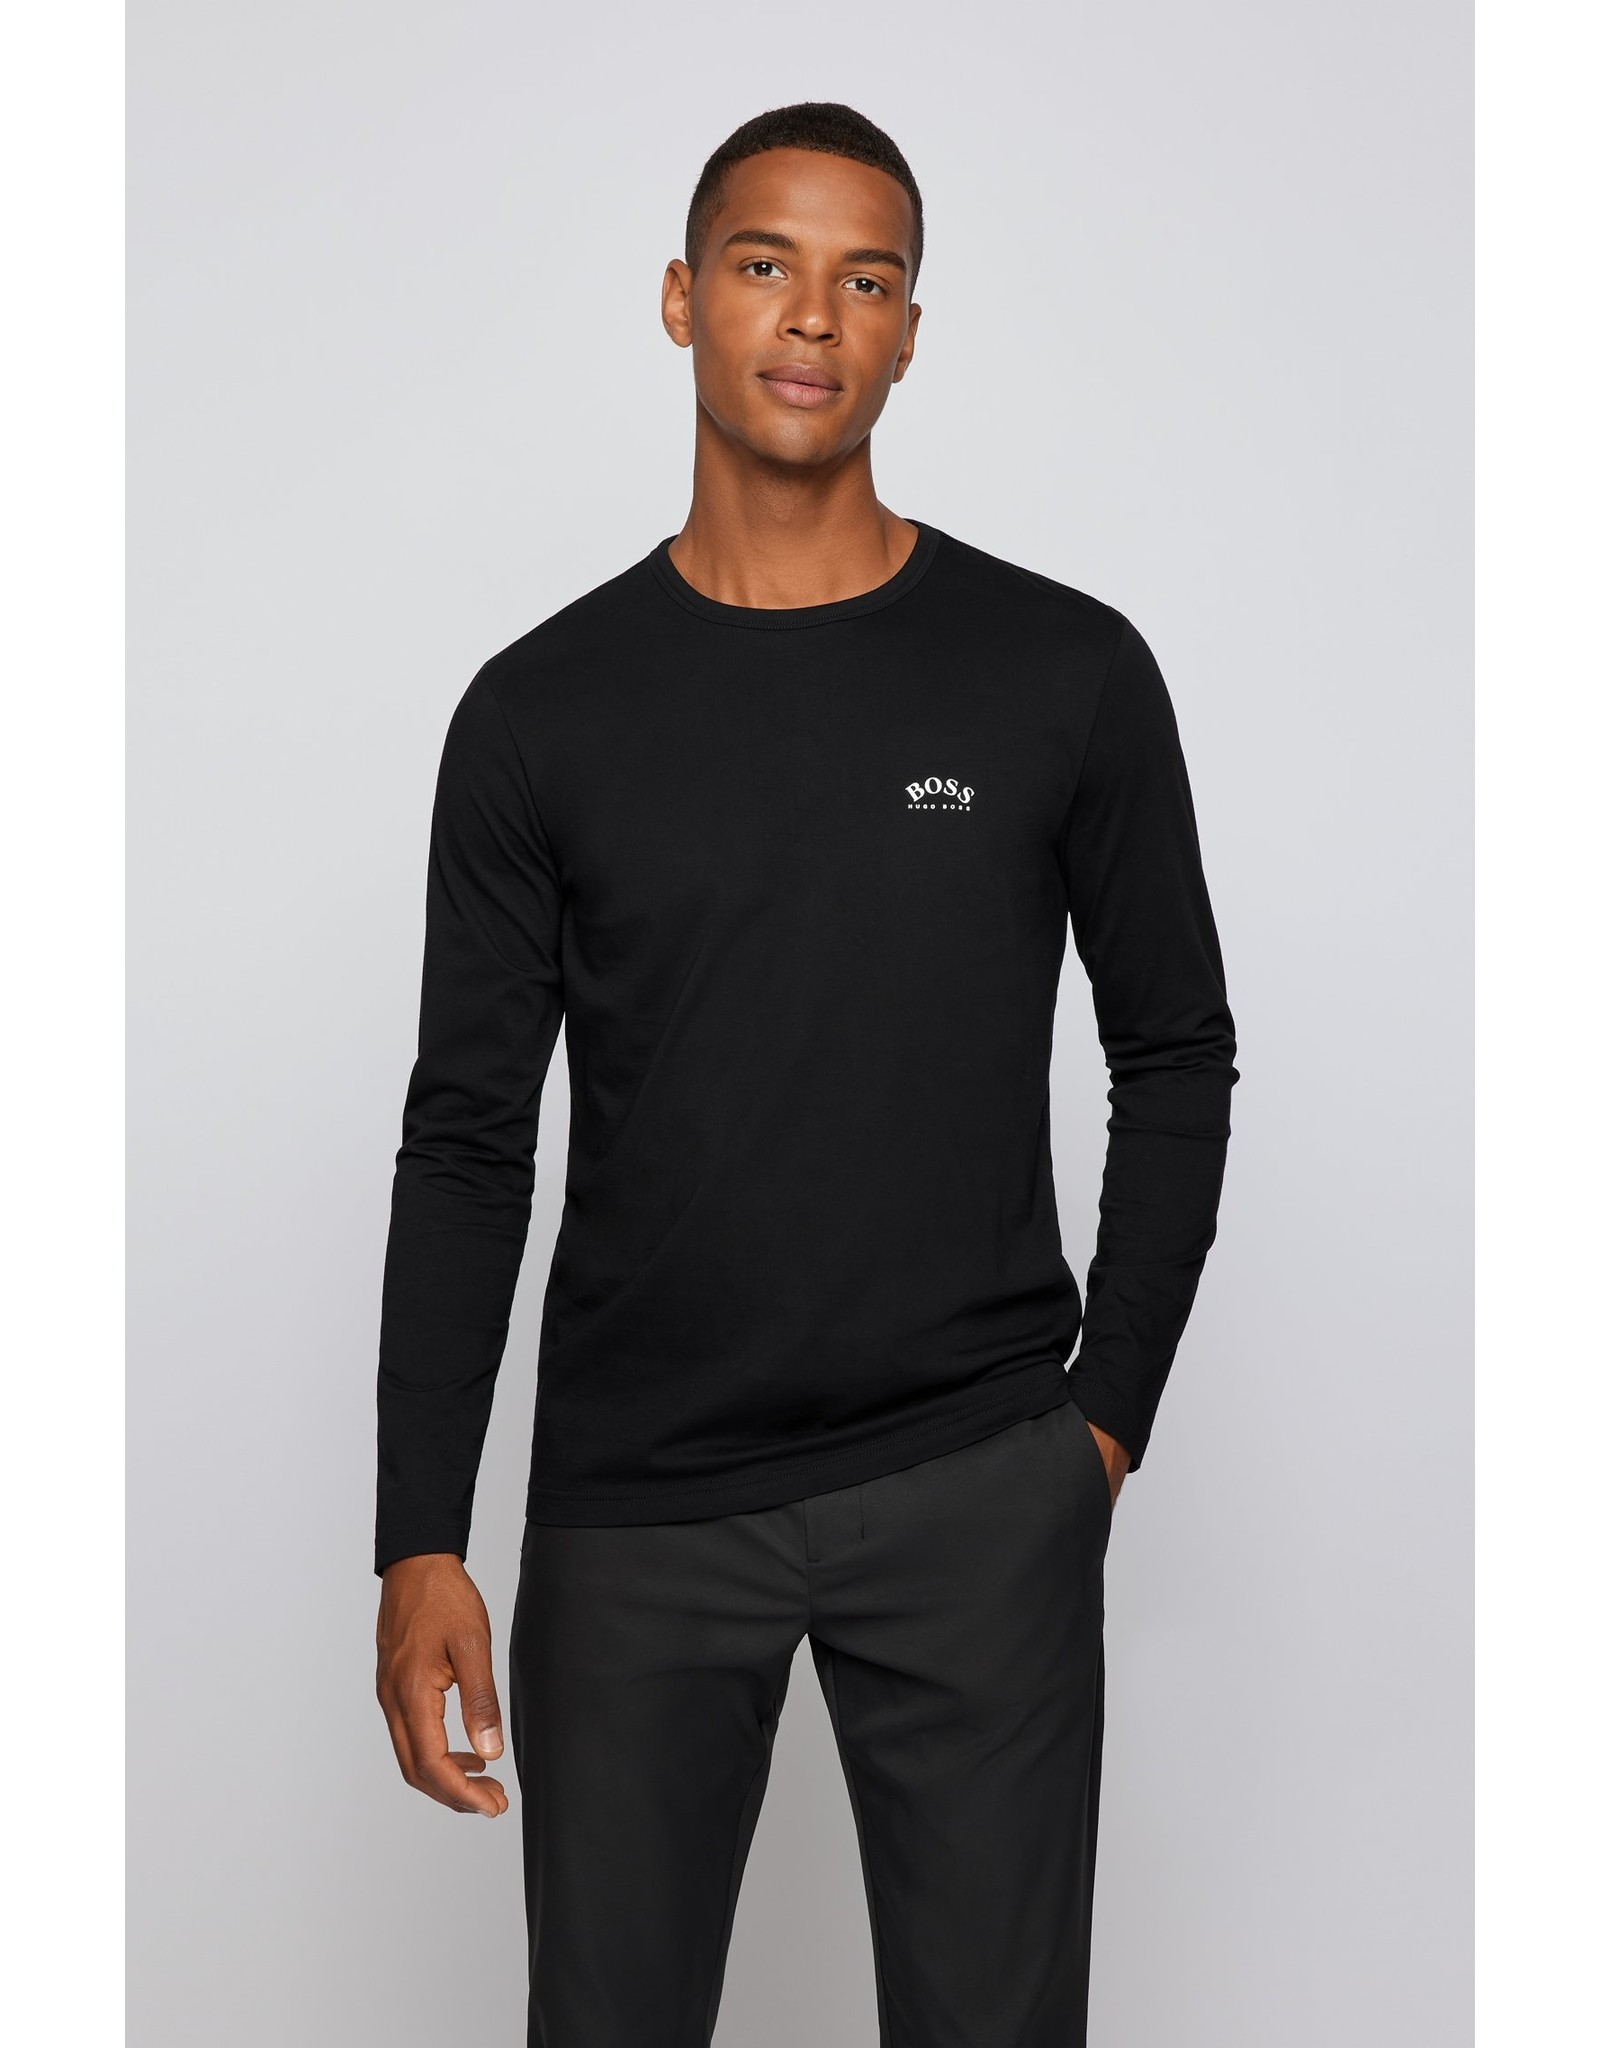 BOSS ATHLEISURE BOSS TOGN CURVED